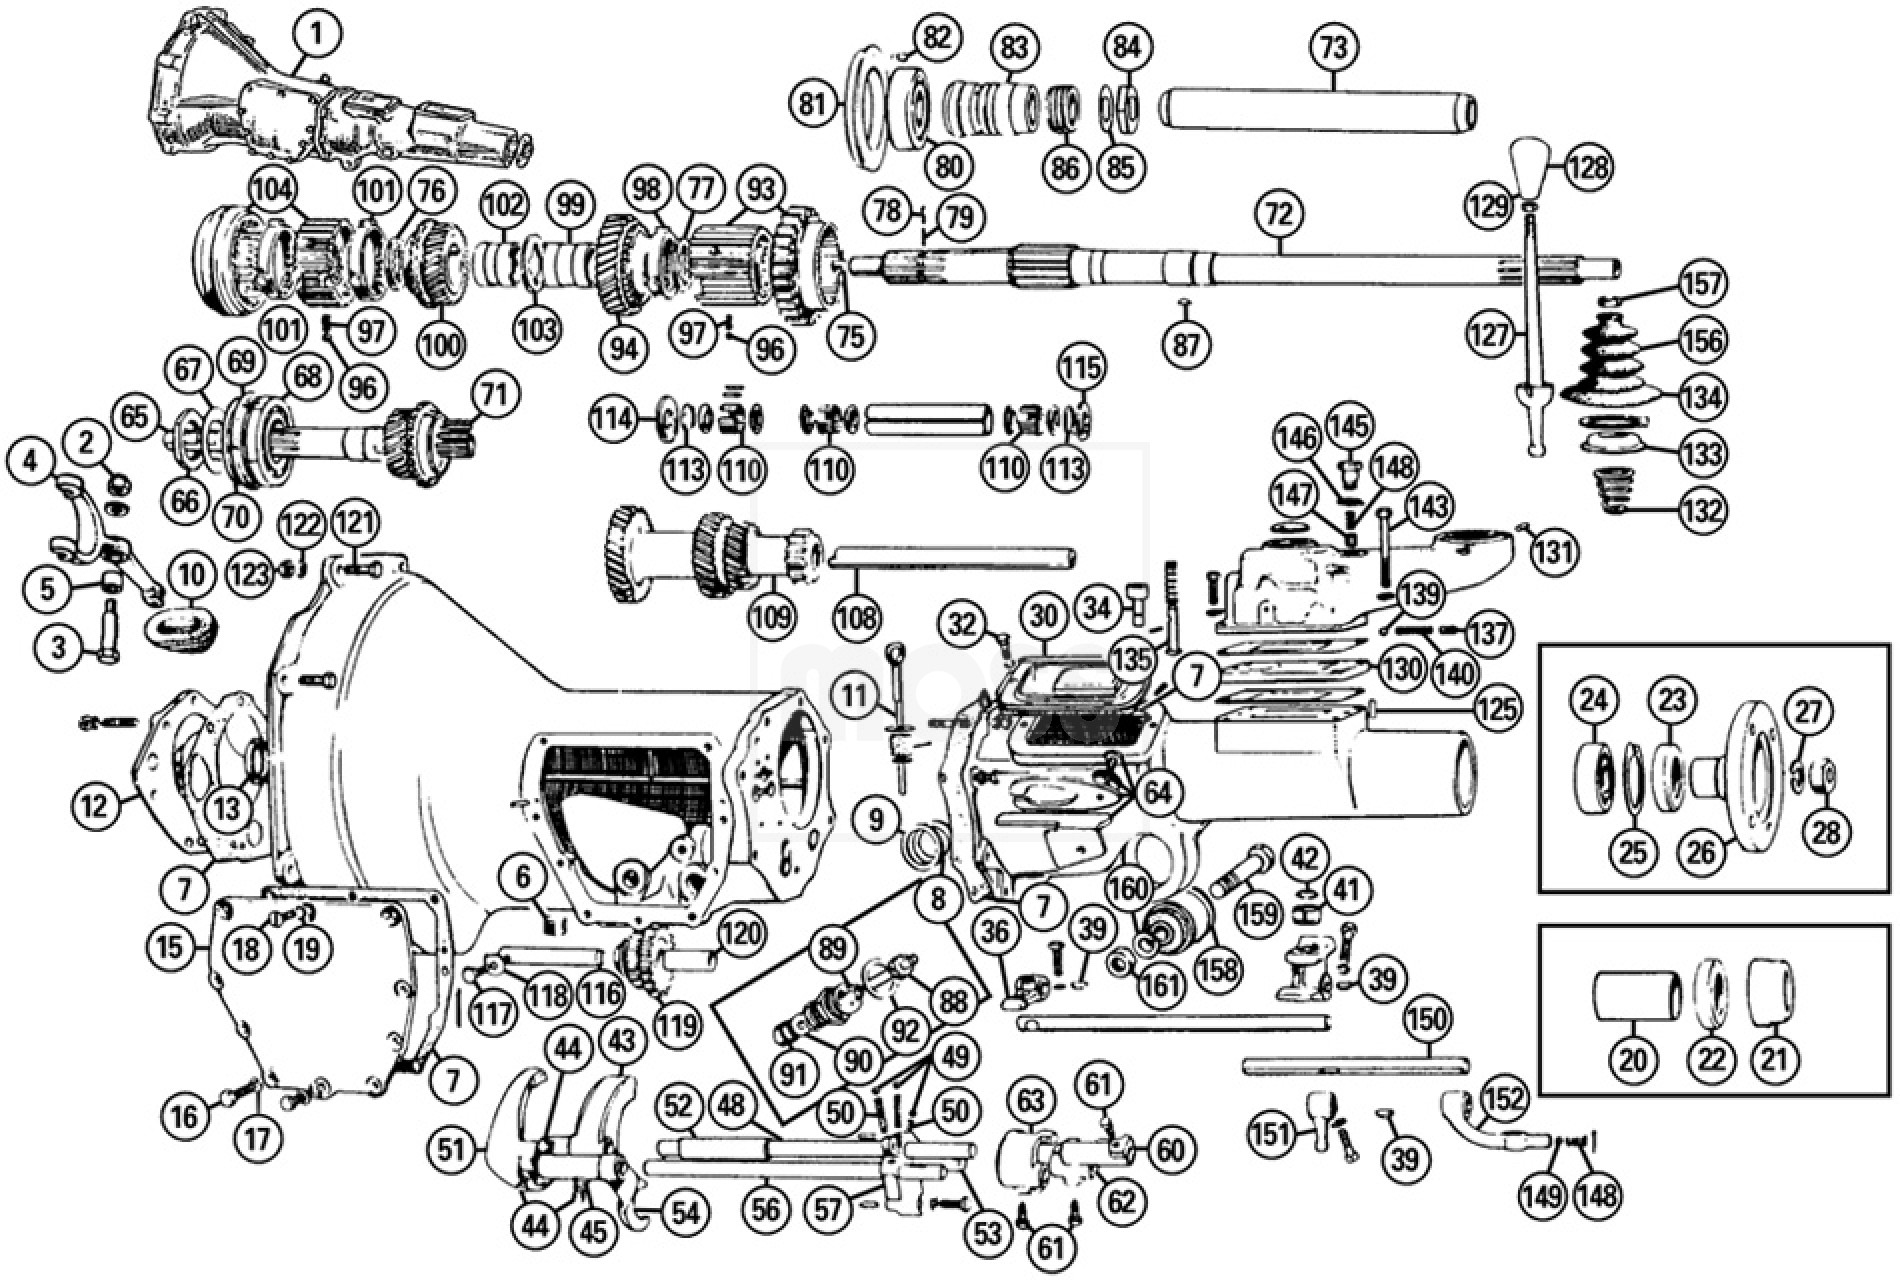 mgb transmission diagram gearbox & components: mga